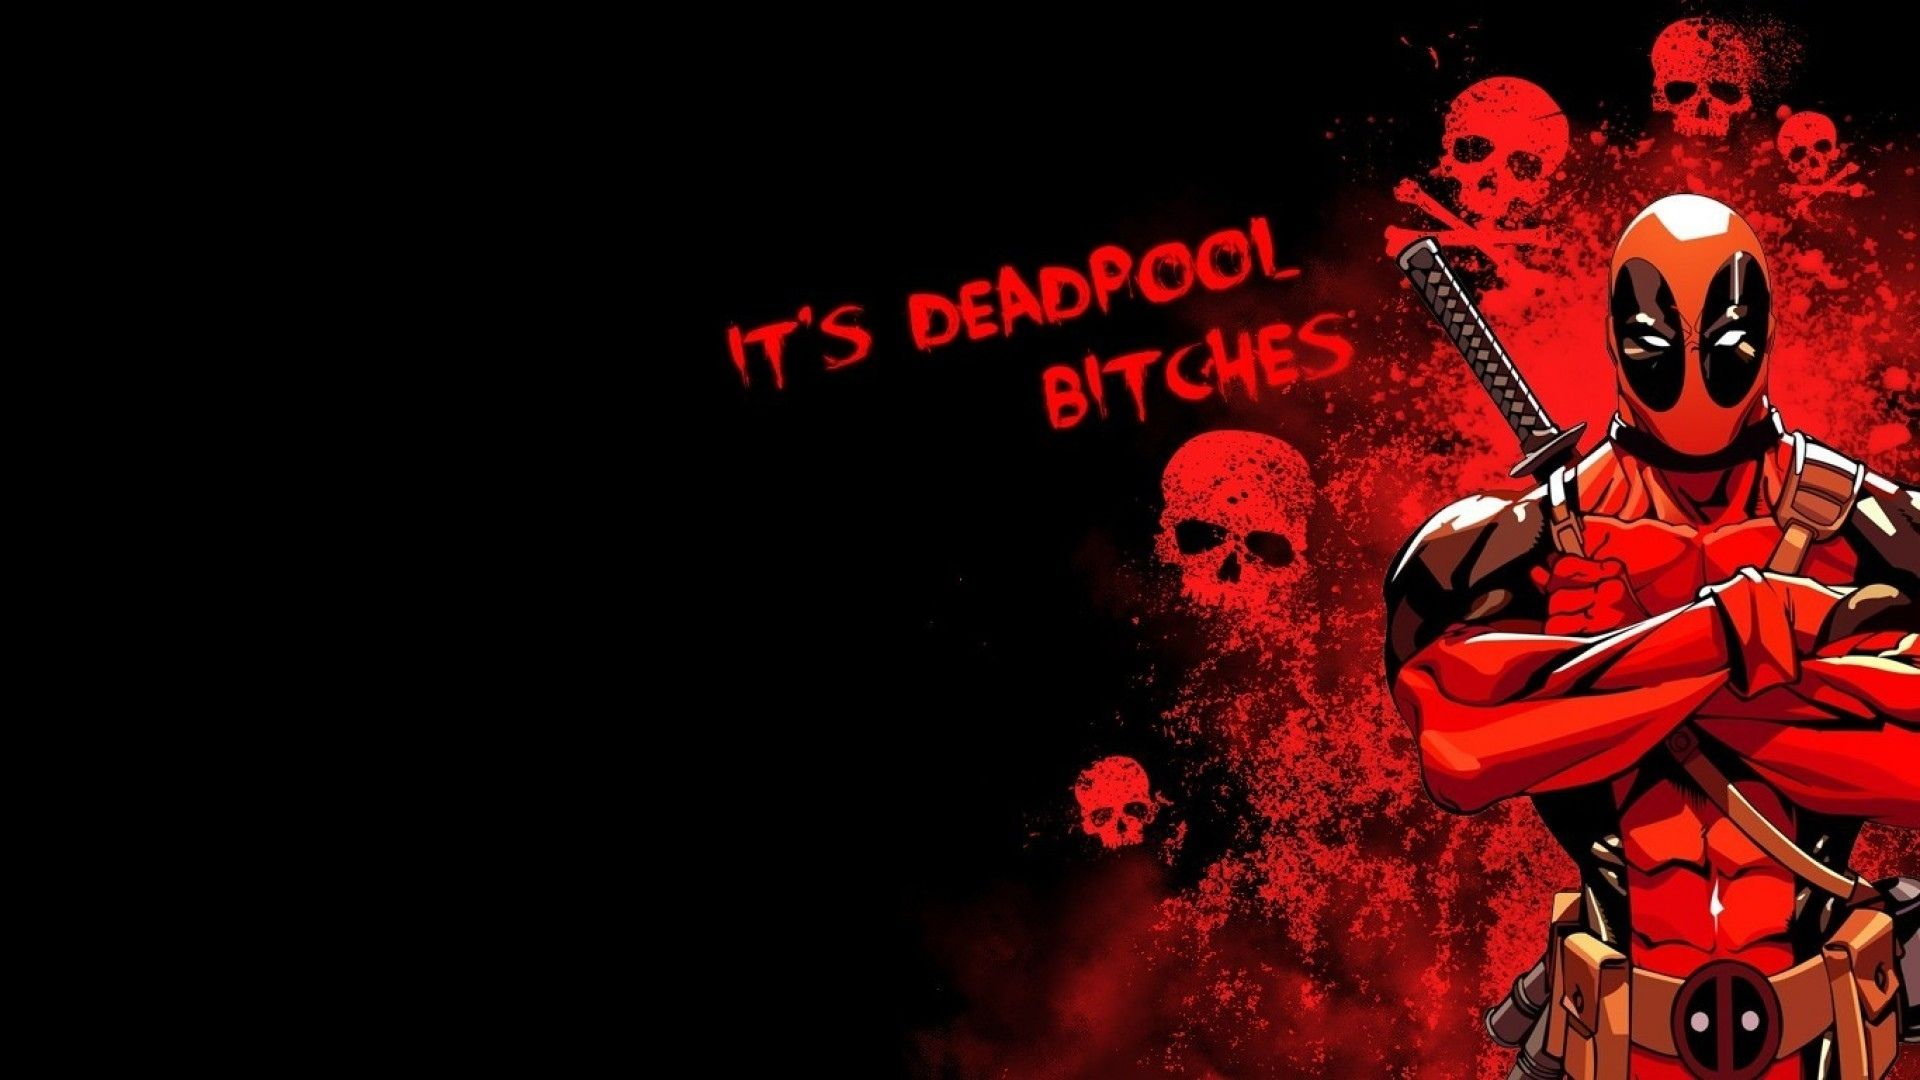 Deadpool Laptop Wallpapers   Top Deadpool Laptop Backgrounds 1920x1080